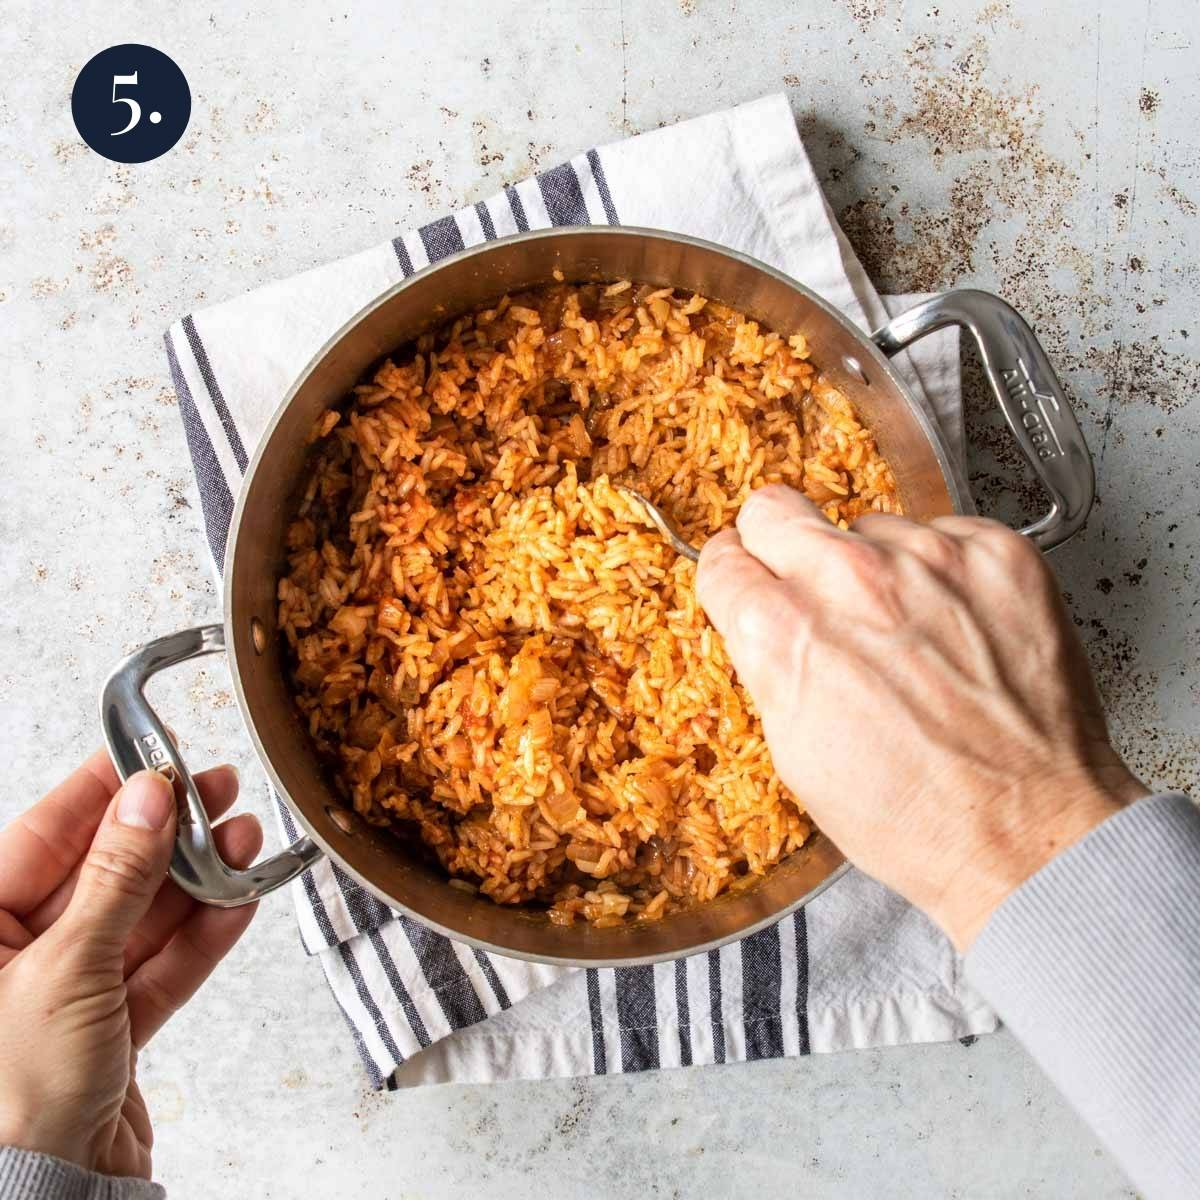 fluffing red rice in a pot with a fork